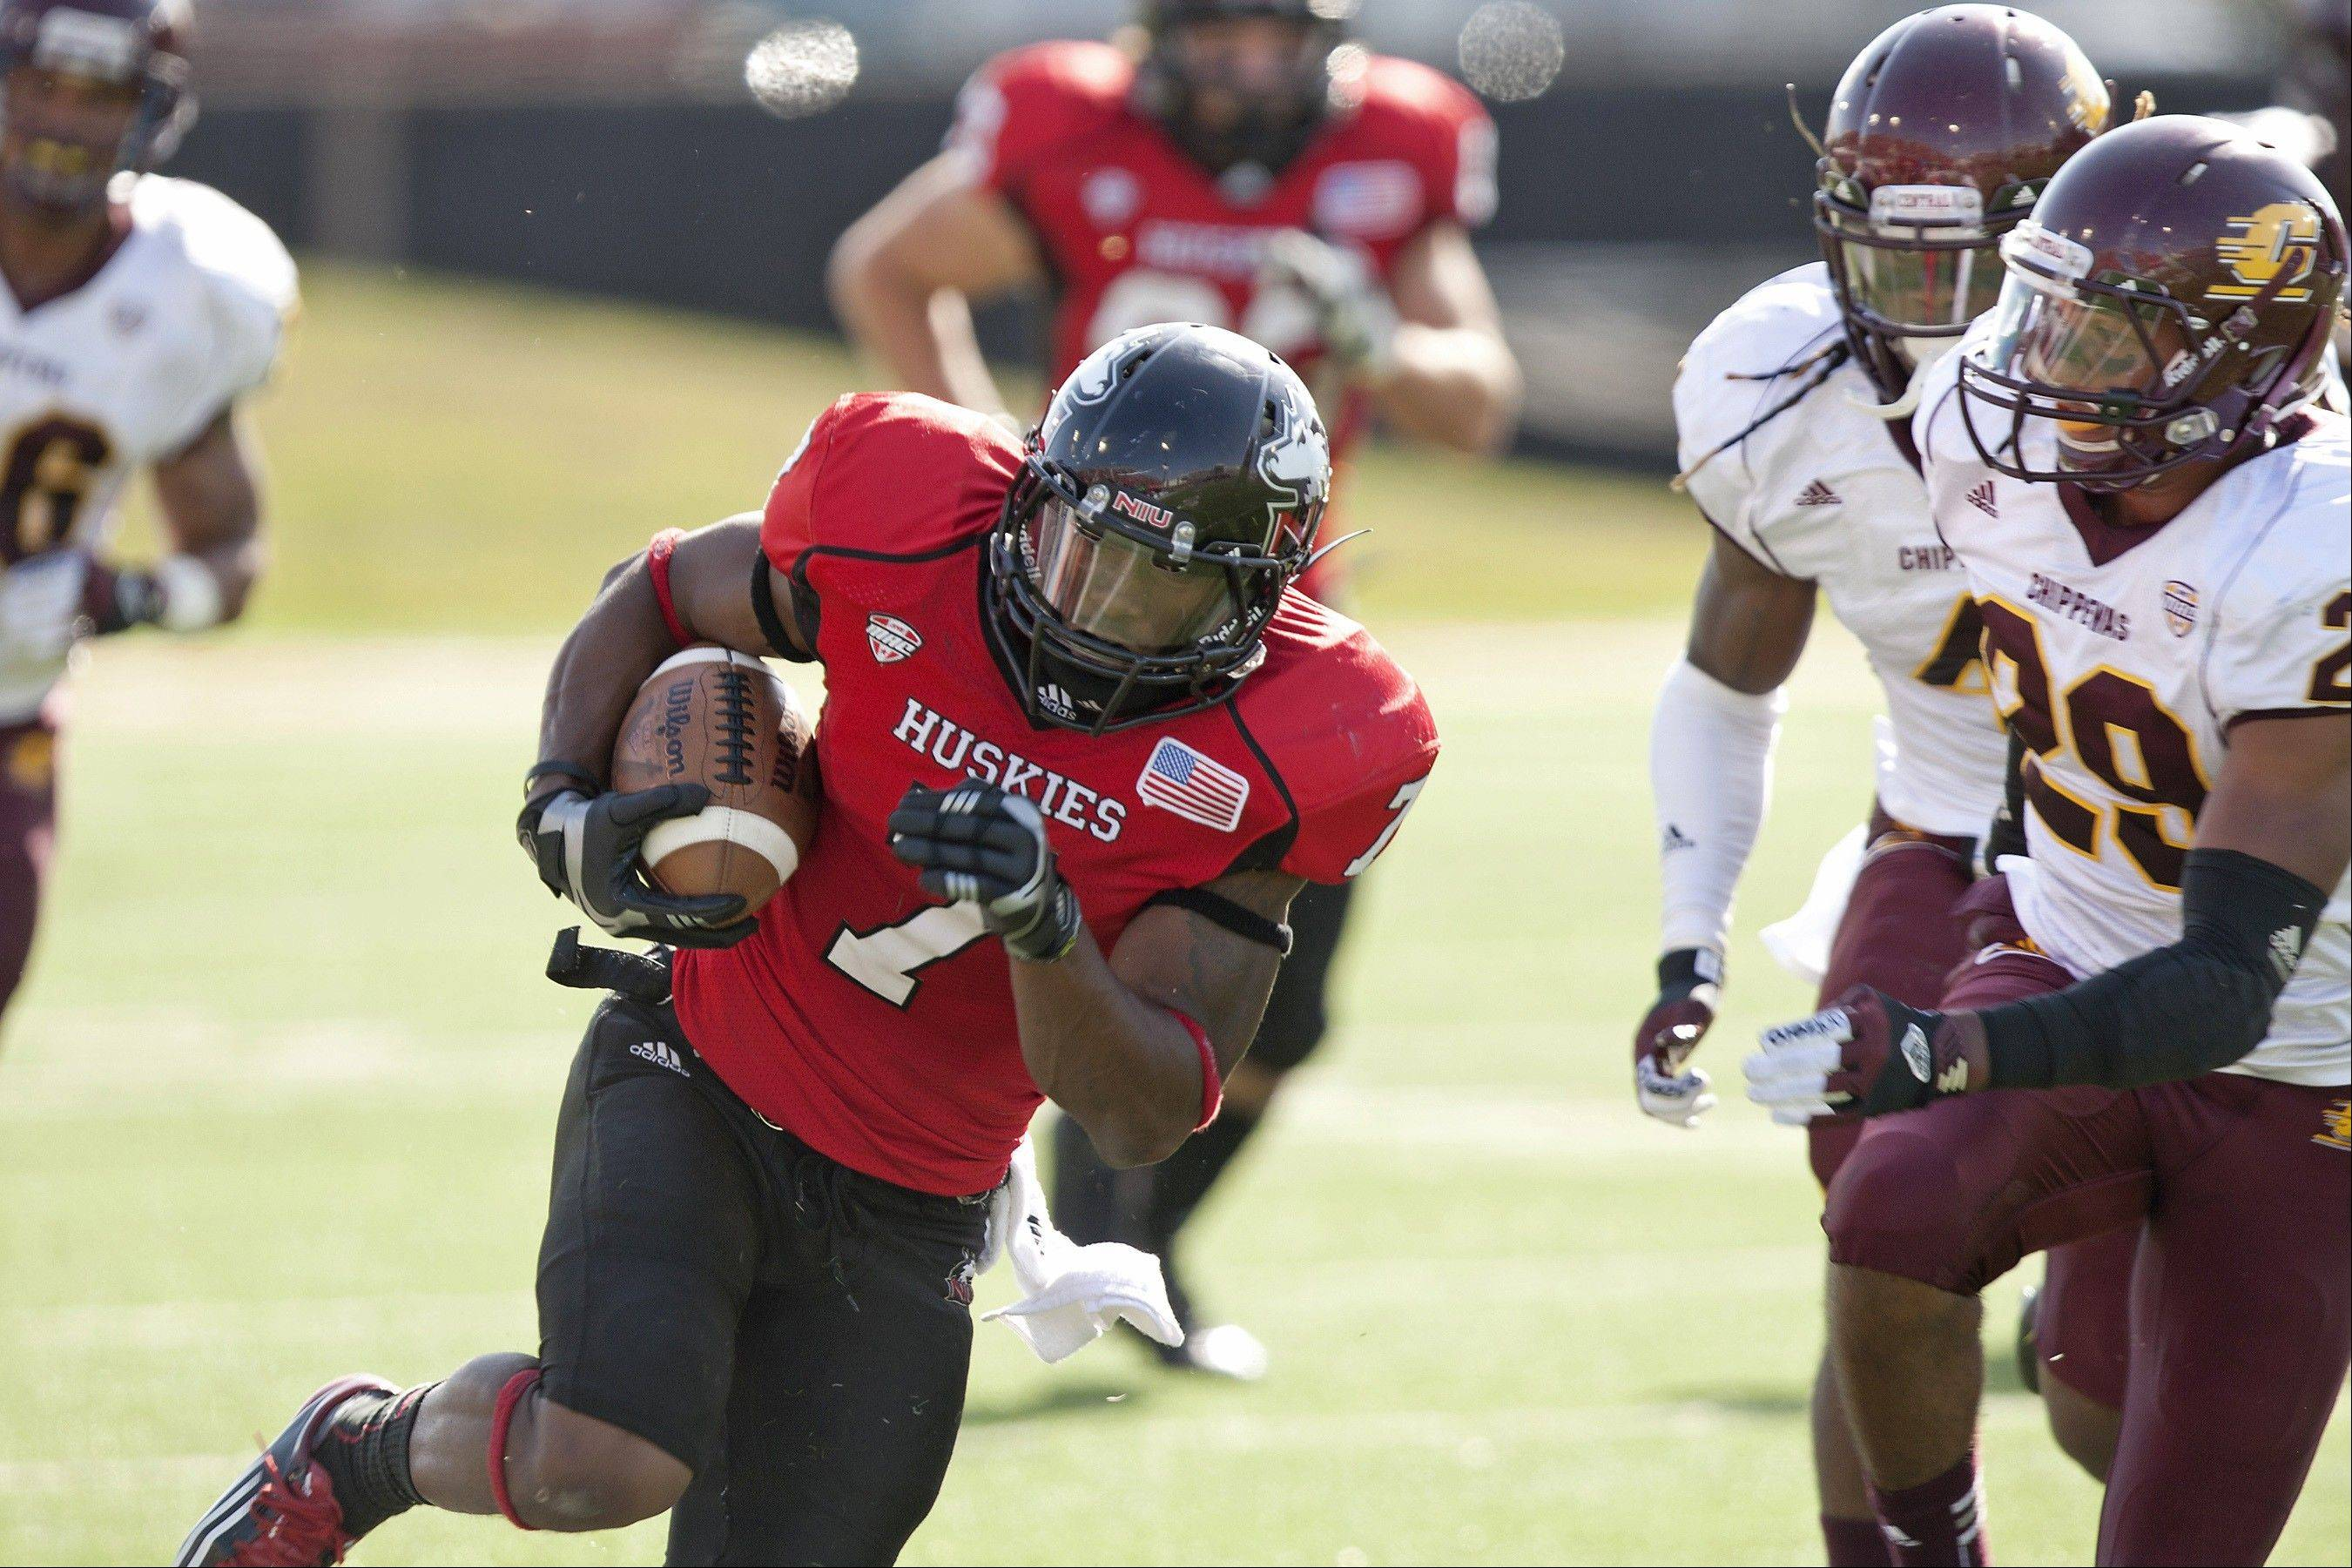 Perez Ashford, a wide receiver, is part of a senior class at Northern Illinois University has won 38 games in four seasons to date and has a chance for another West Division and MAC Championship this year.